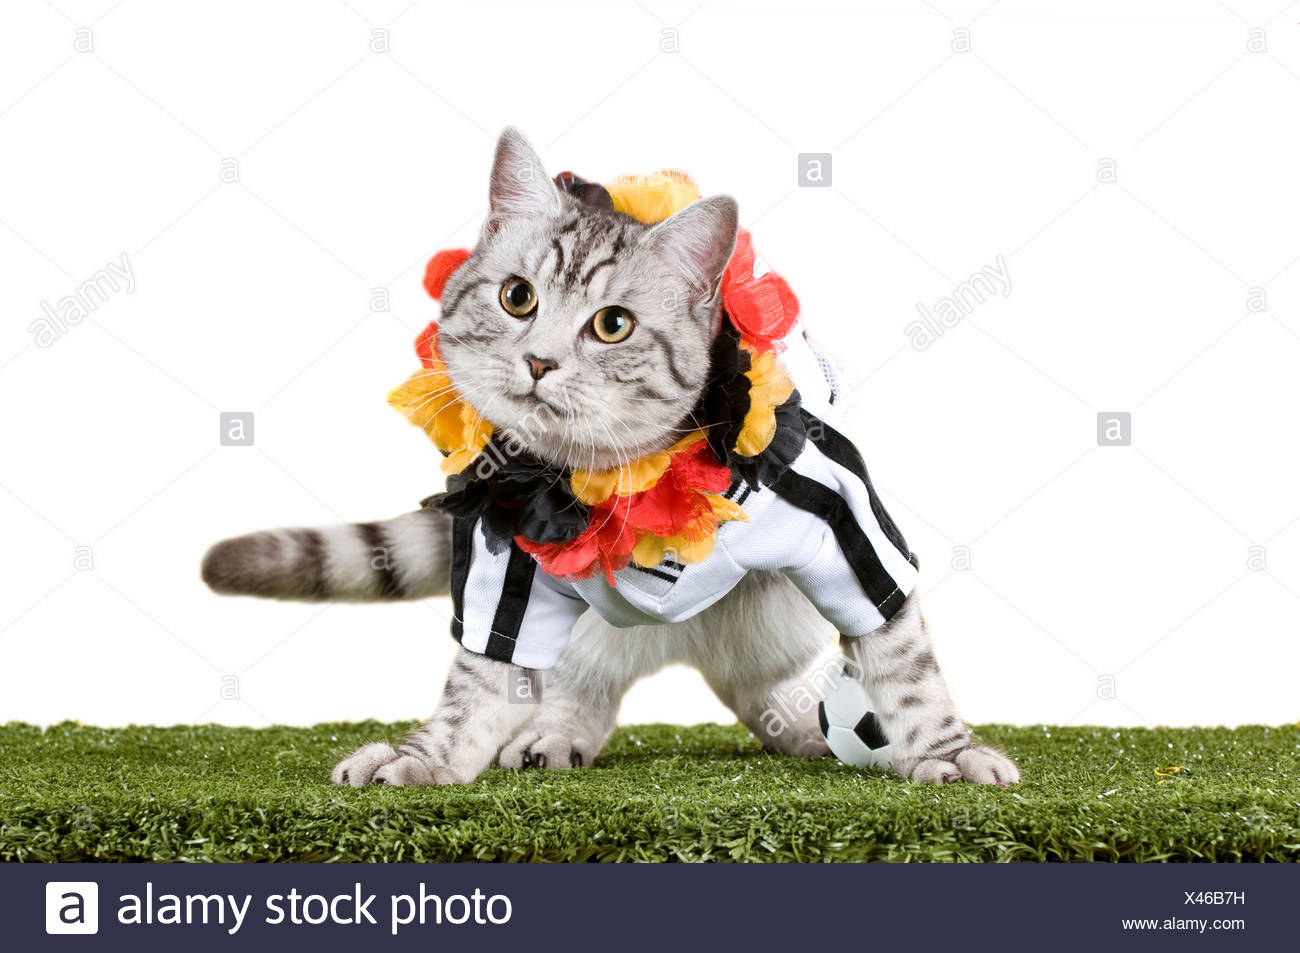 d5b97cde5 Domestic Cat. Tabby adult dressed in the jersey of the German National  Football Team with garland in the Germen national colours